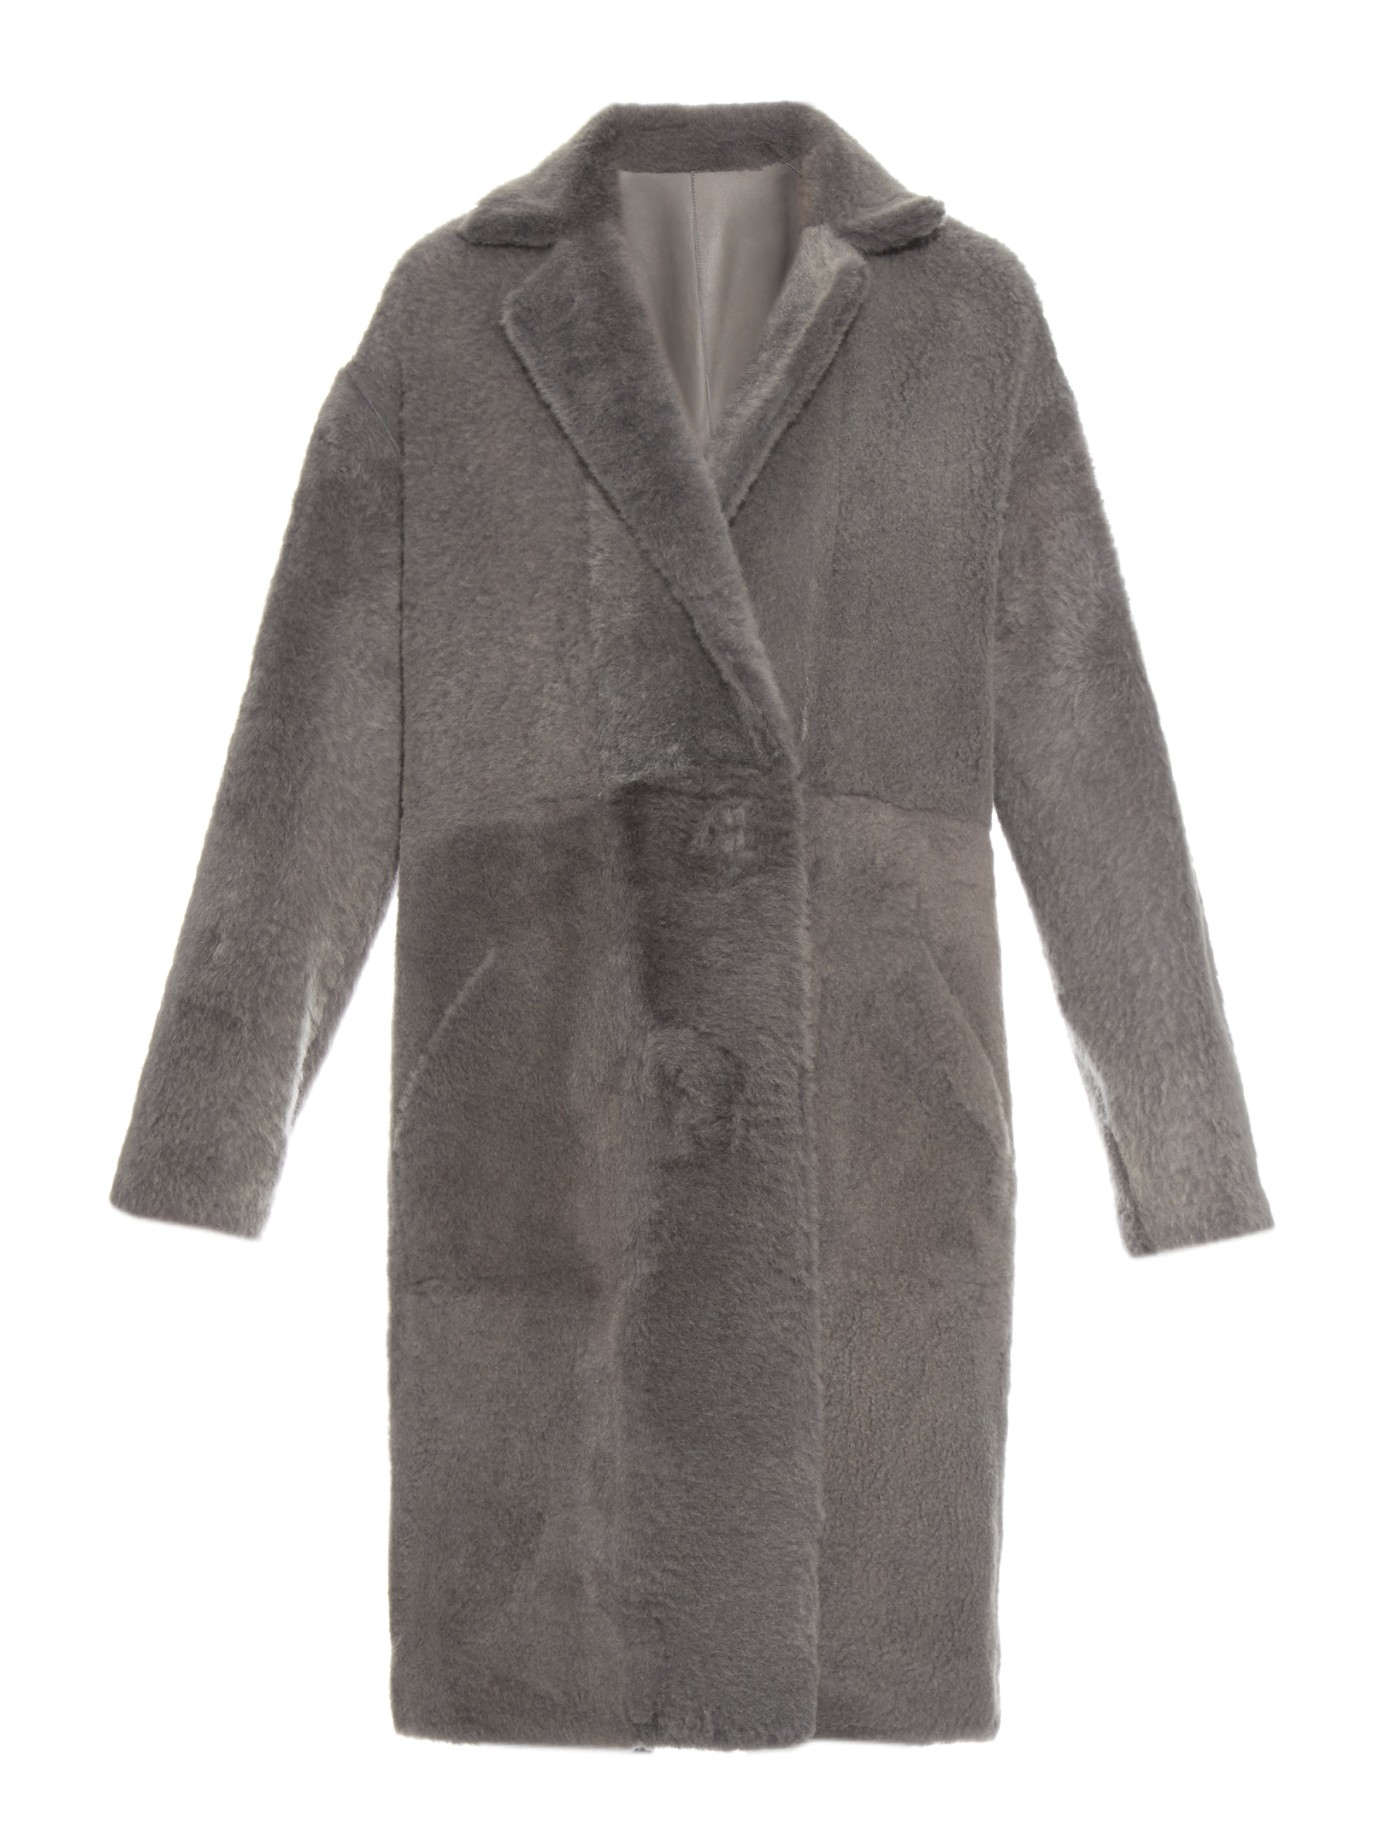 32 paradis sprung freres Reversible Zipped-sides Shearling Coat in ...